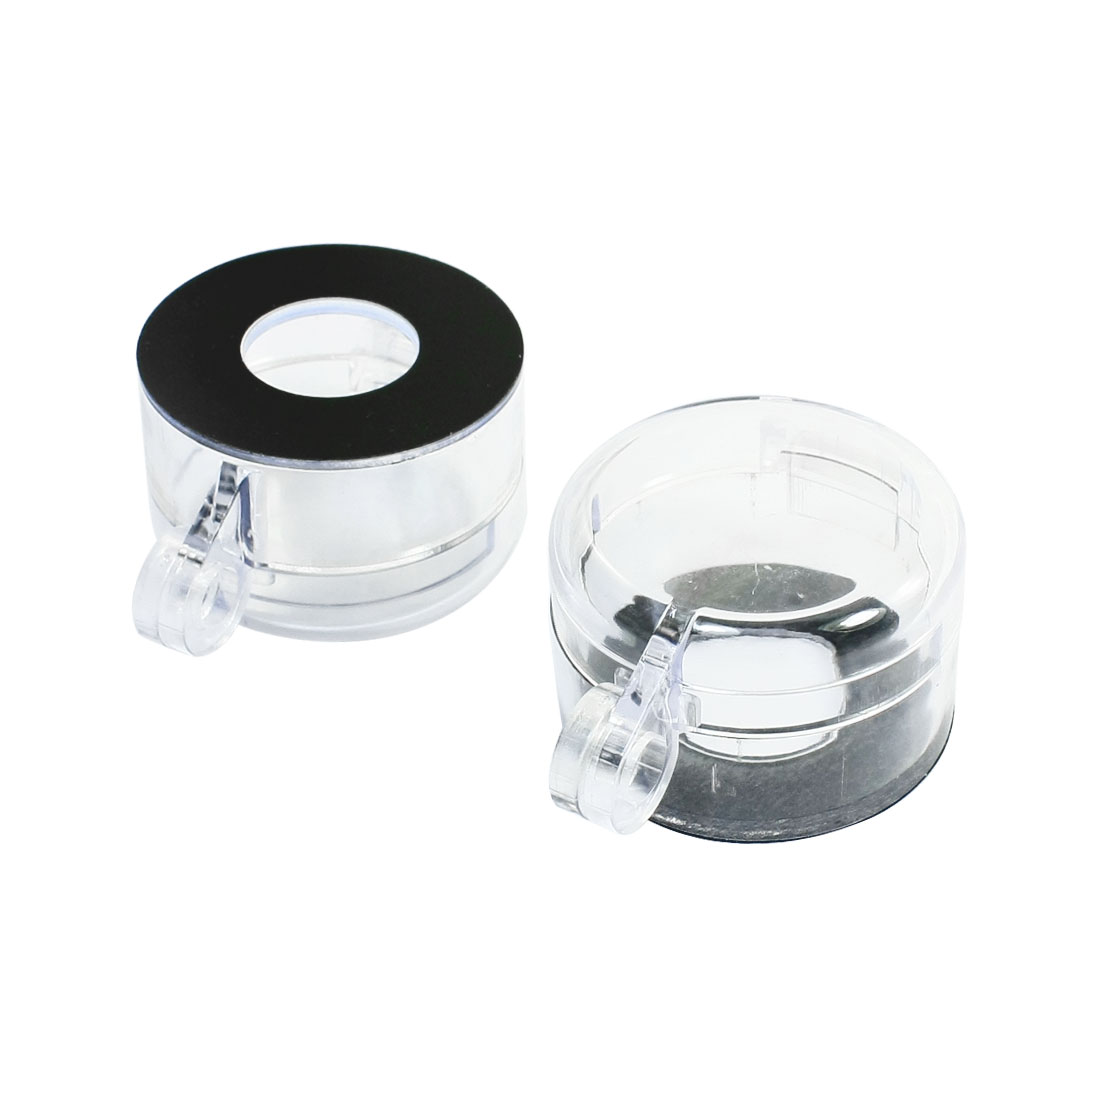 2pcs Clear 22mm Round Push Button Switch Protective Cover Guard Case